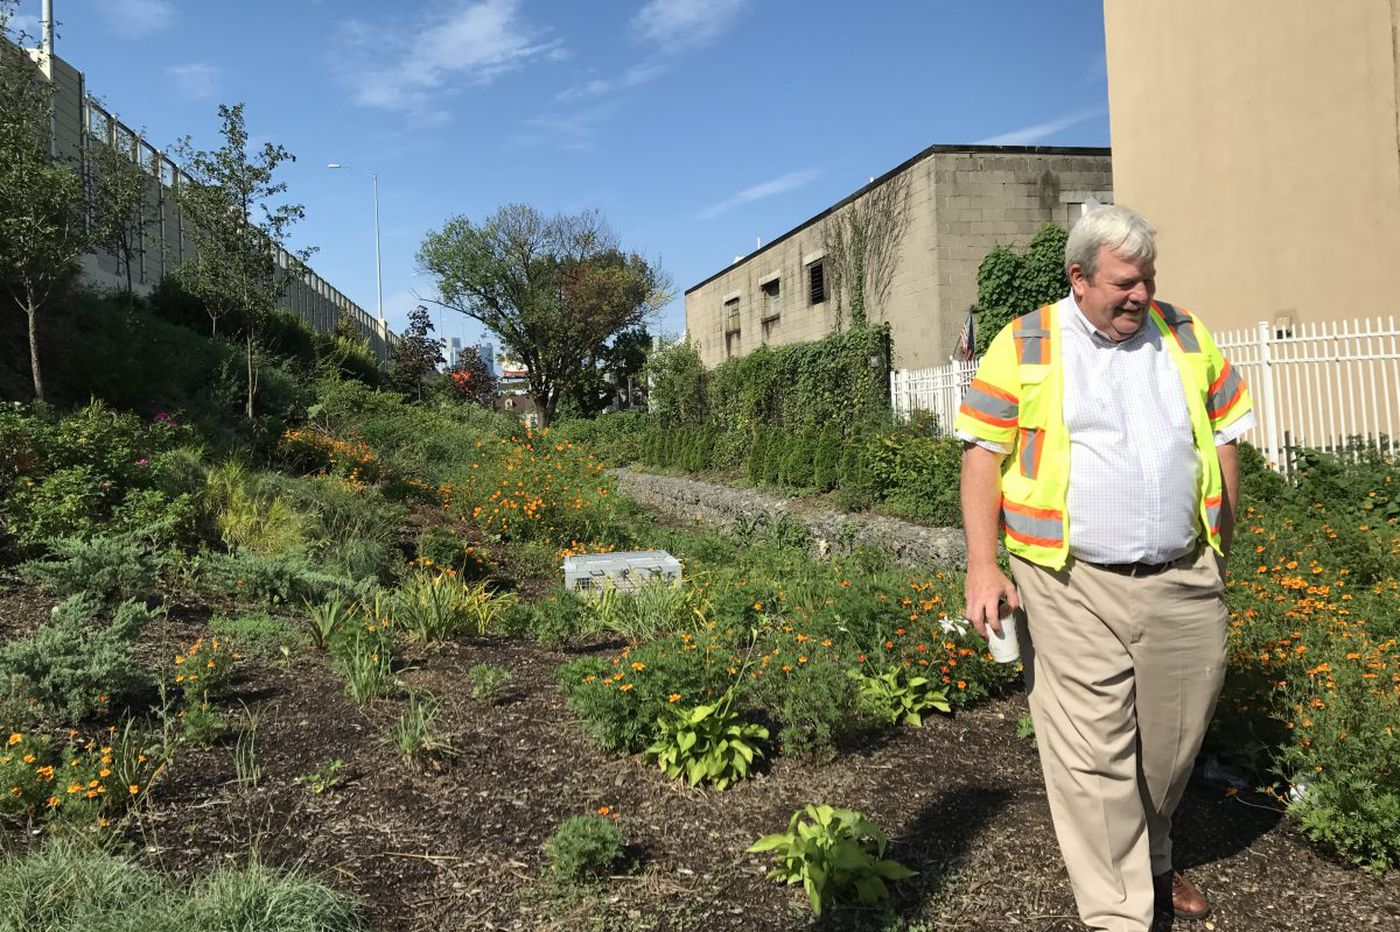 Those surprising gardens along I-95 in Fishtown? They'll manage Olympic amounts of stormwater